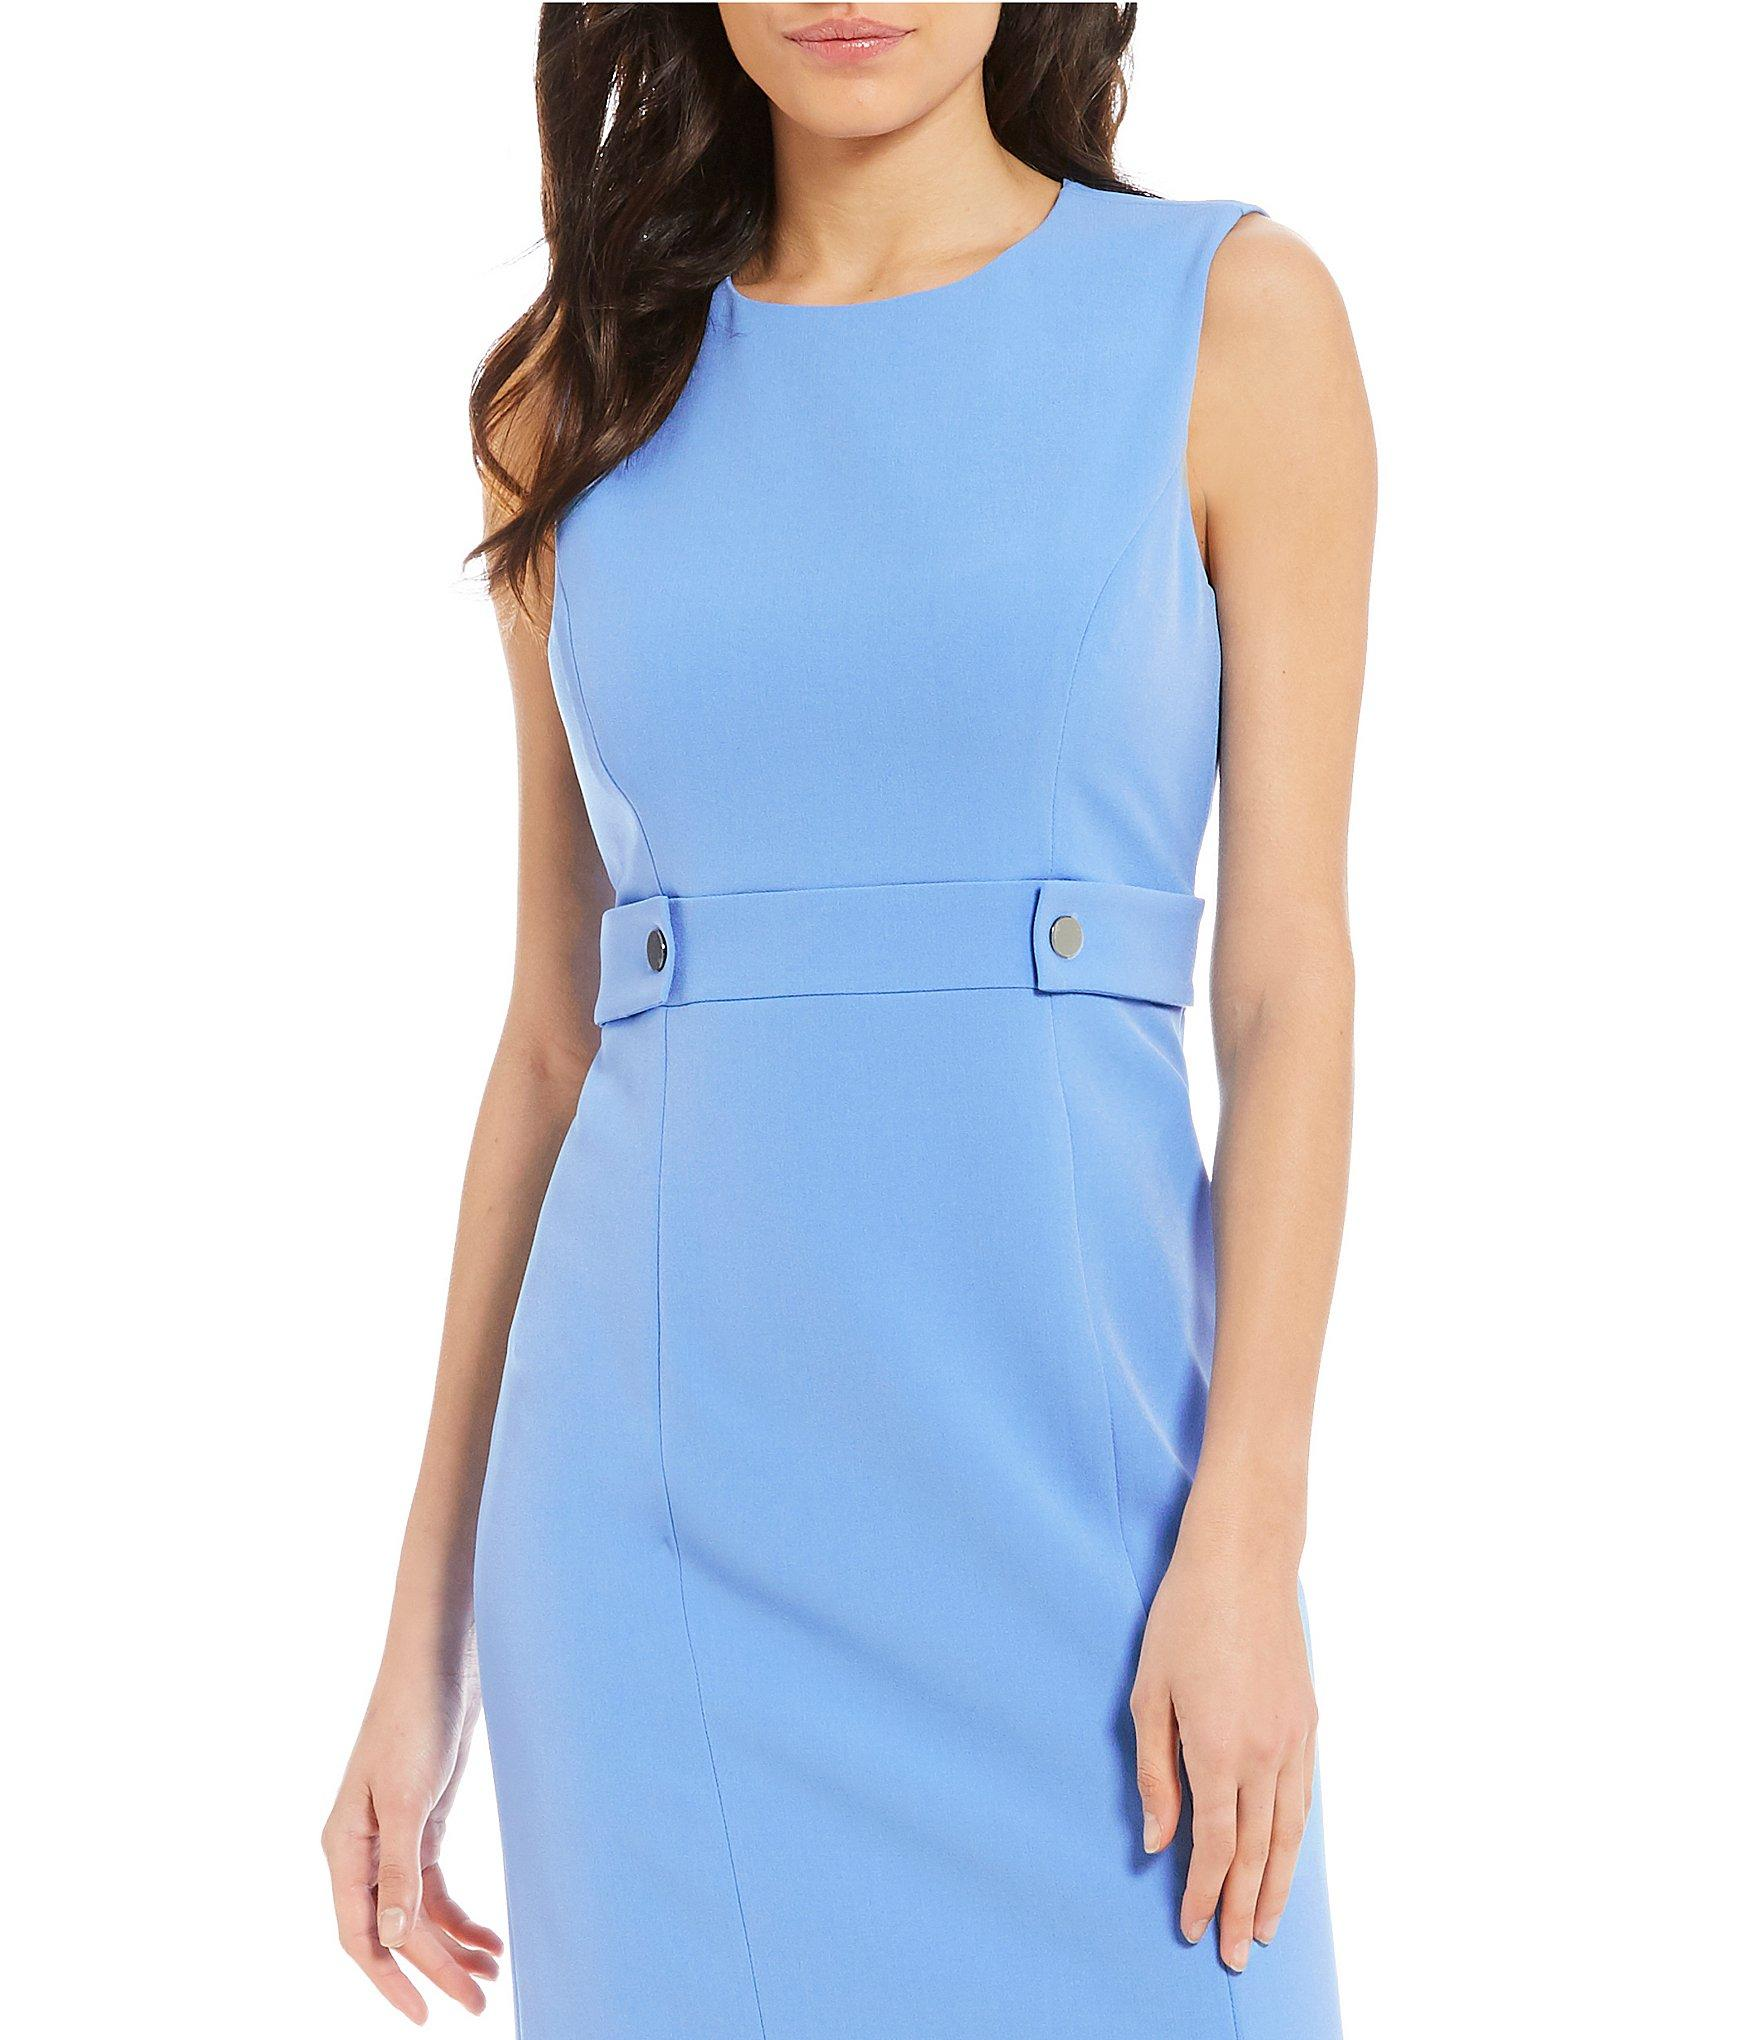 fbaf6d549c6 Lyst - Kasper Stretch Crepe Belted Waist Sleeveless Sheath Dress in Blue